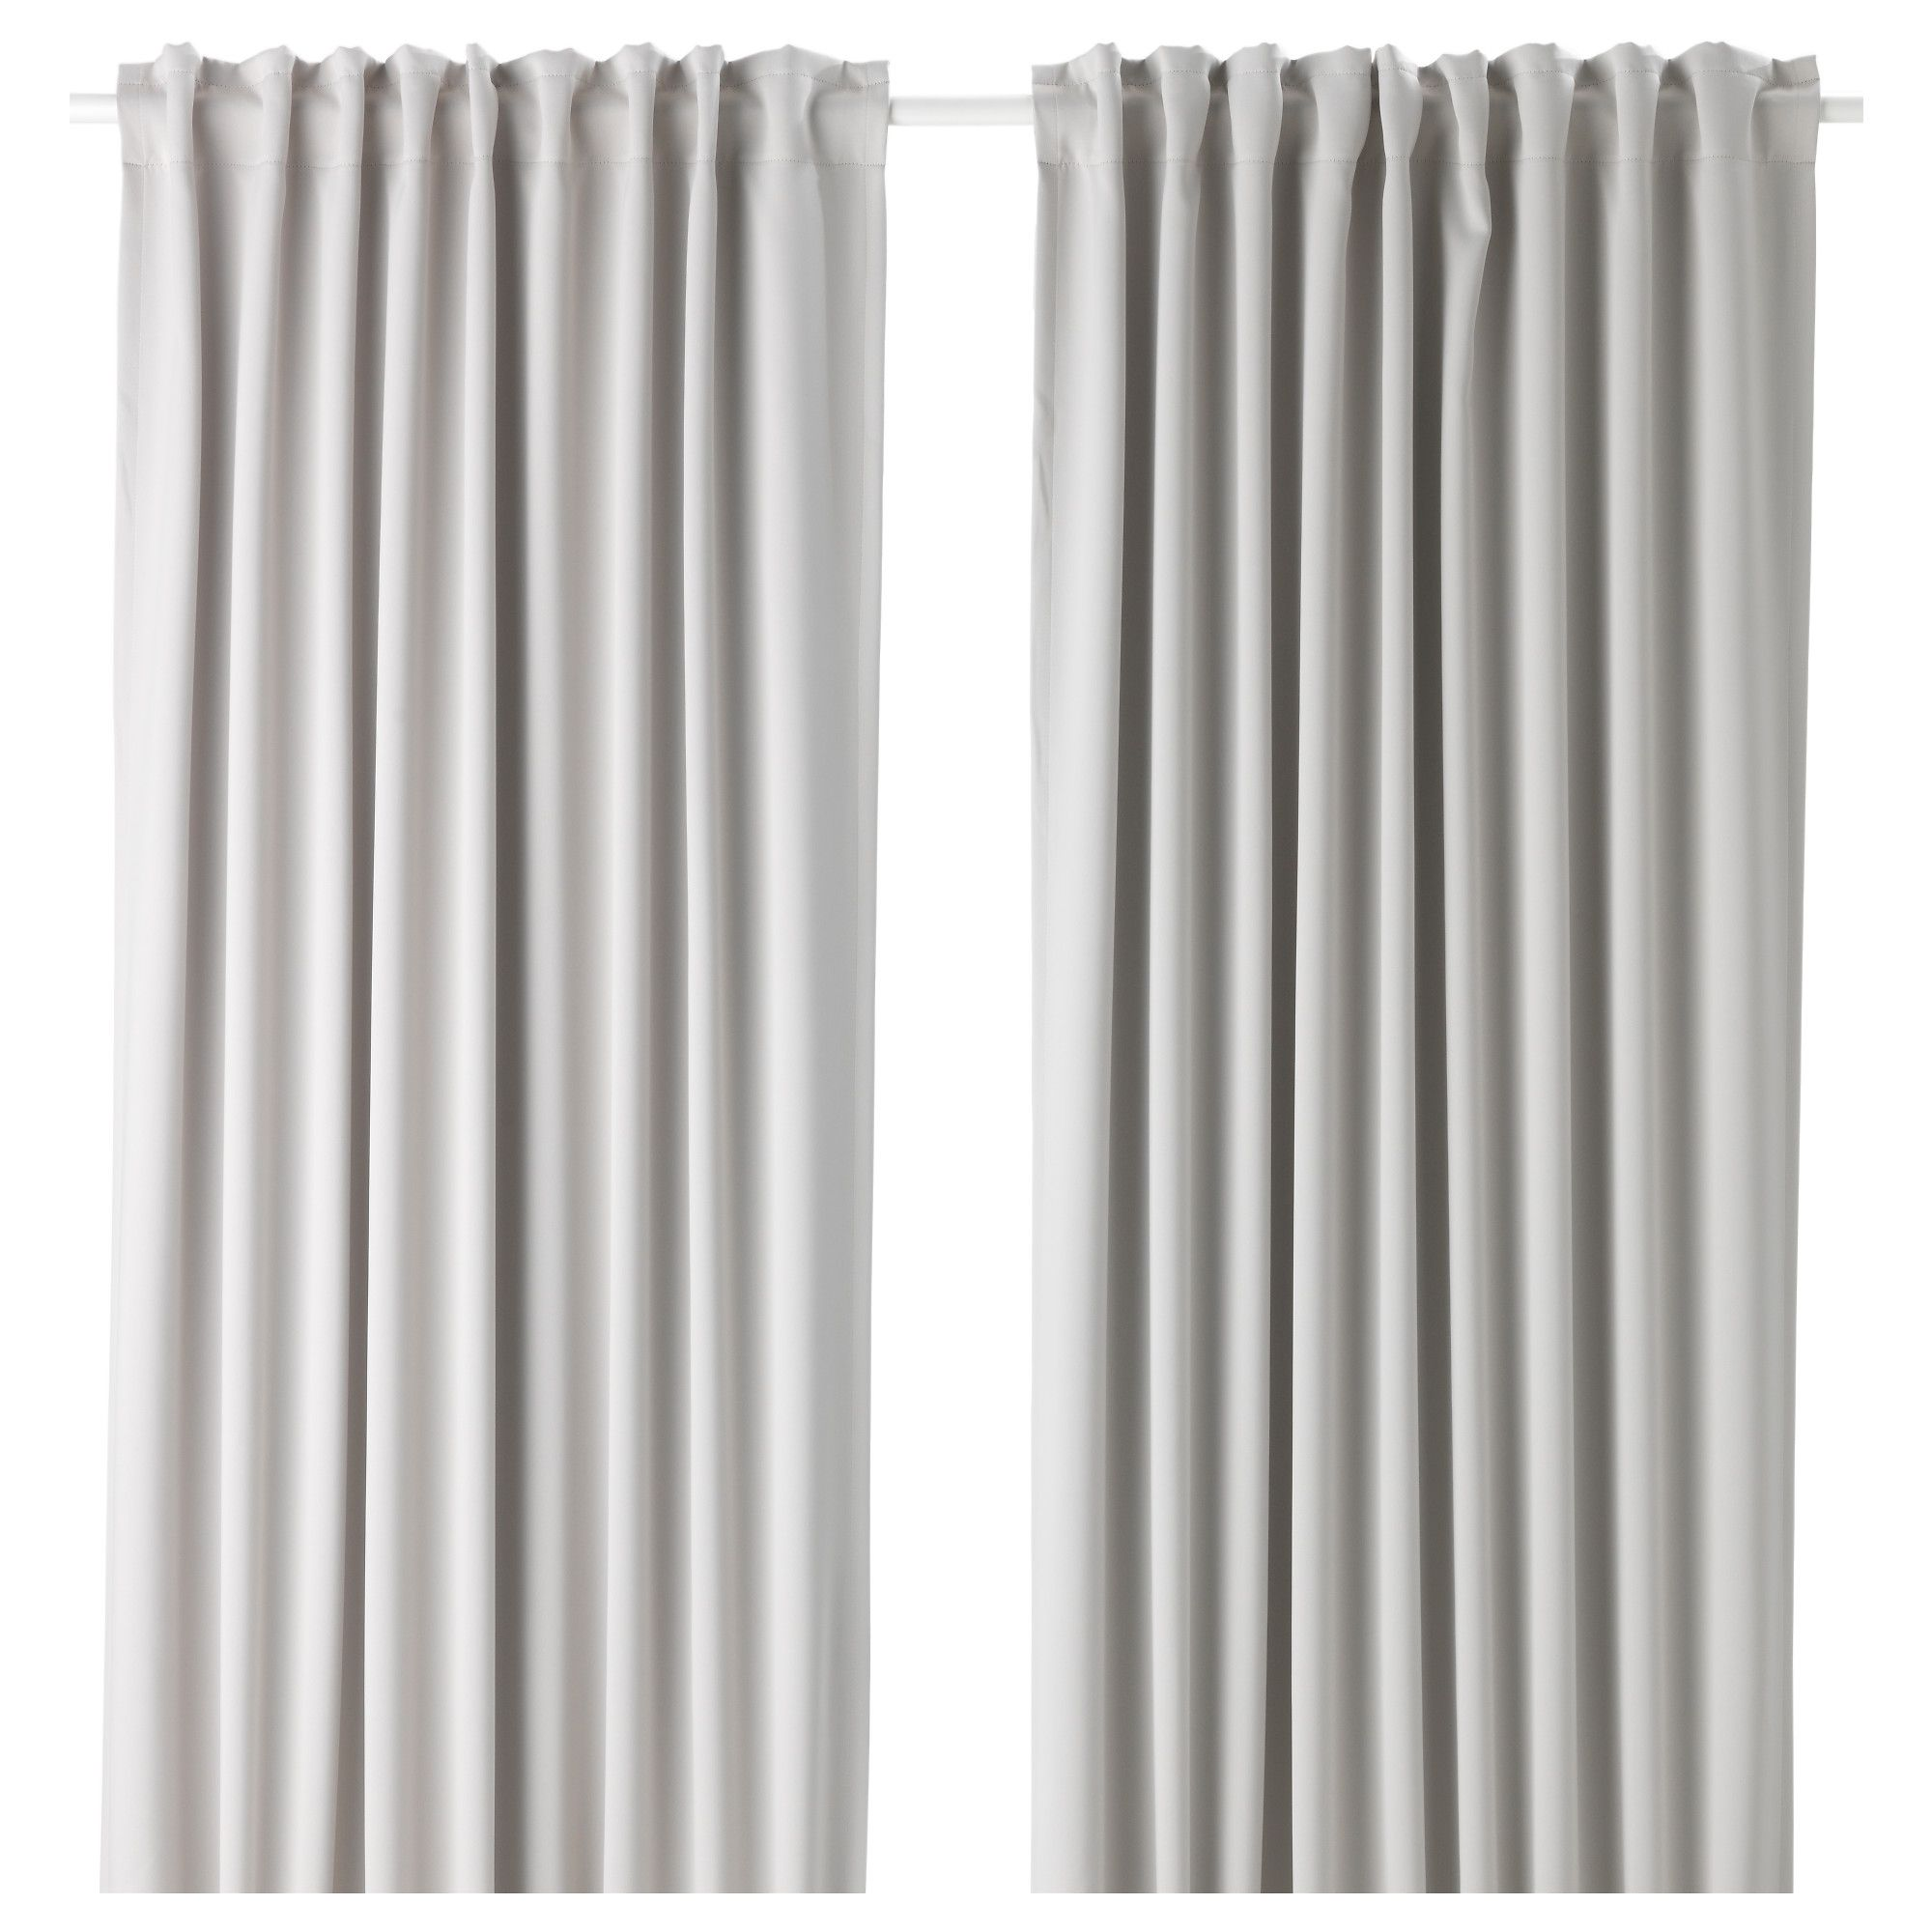 colours go accent accents for black striped living curtains that bedroom and walmart with room curtain interior white decorating ivory sofa chairs design simple solid